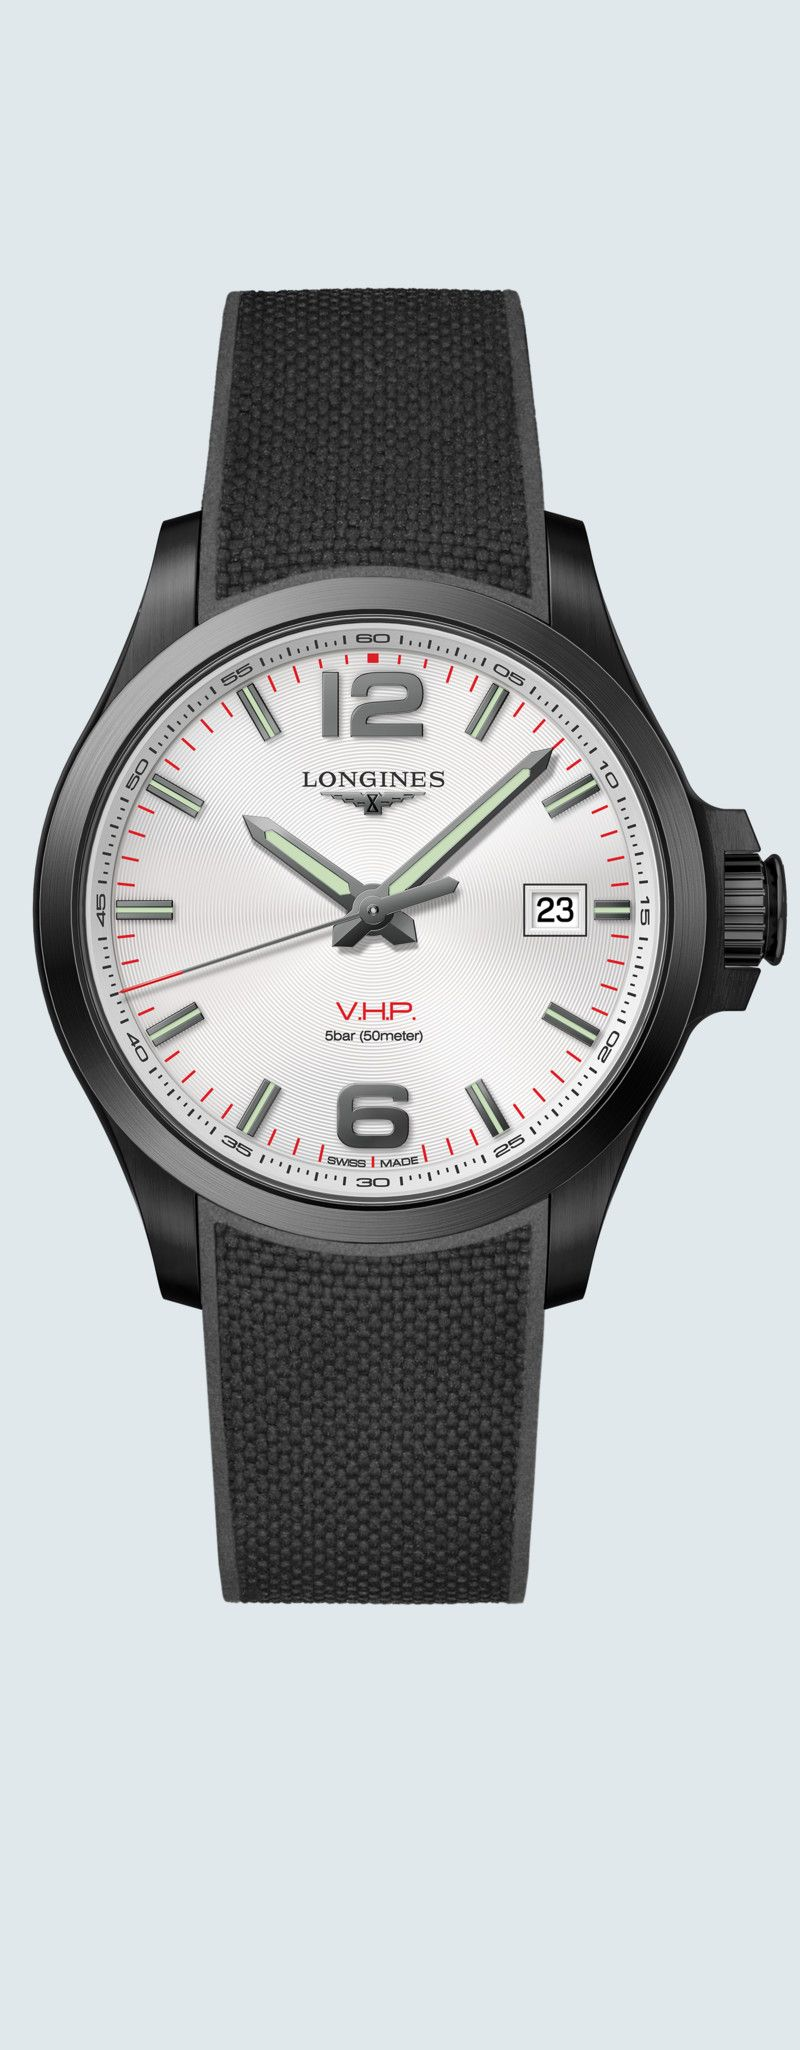 43.00 mm Black PVD coating case with Silver carved dial and Rubber strap Black strap - case zoom vi